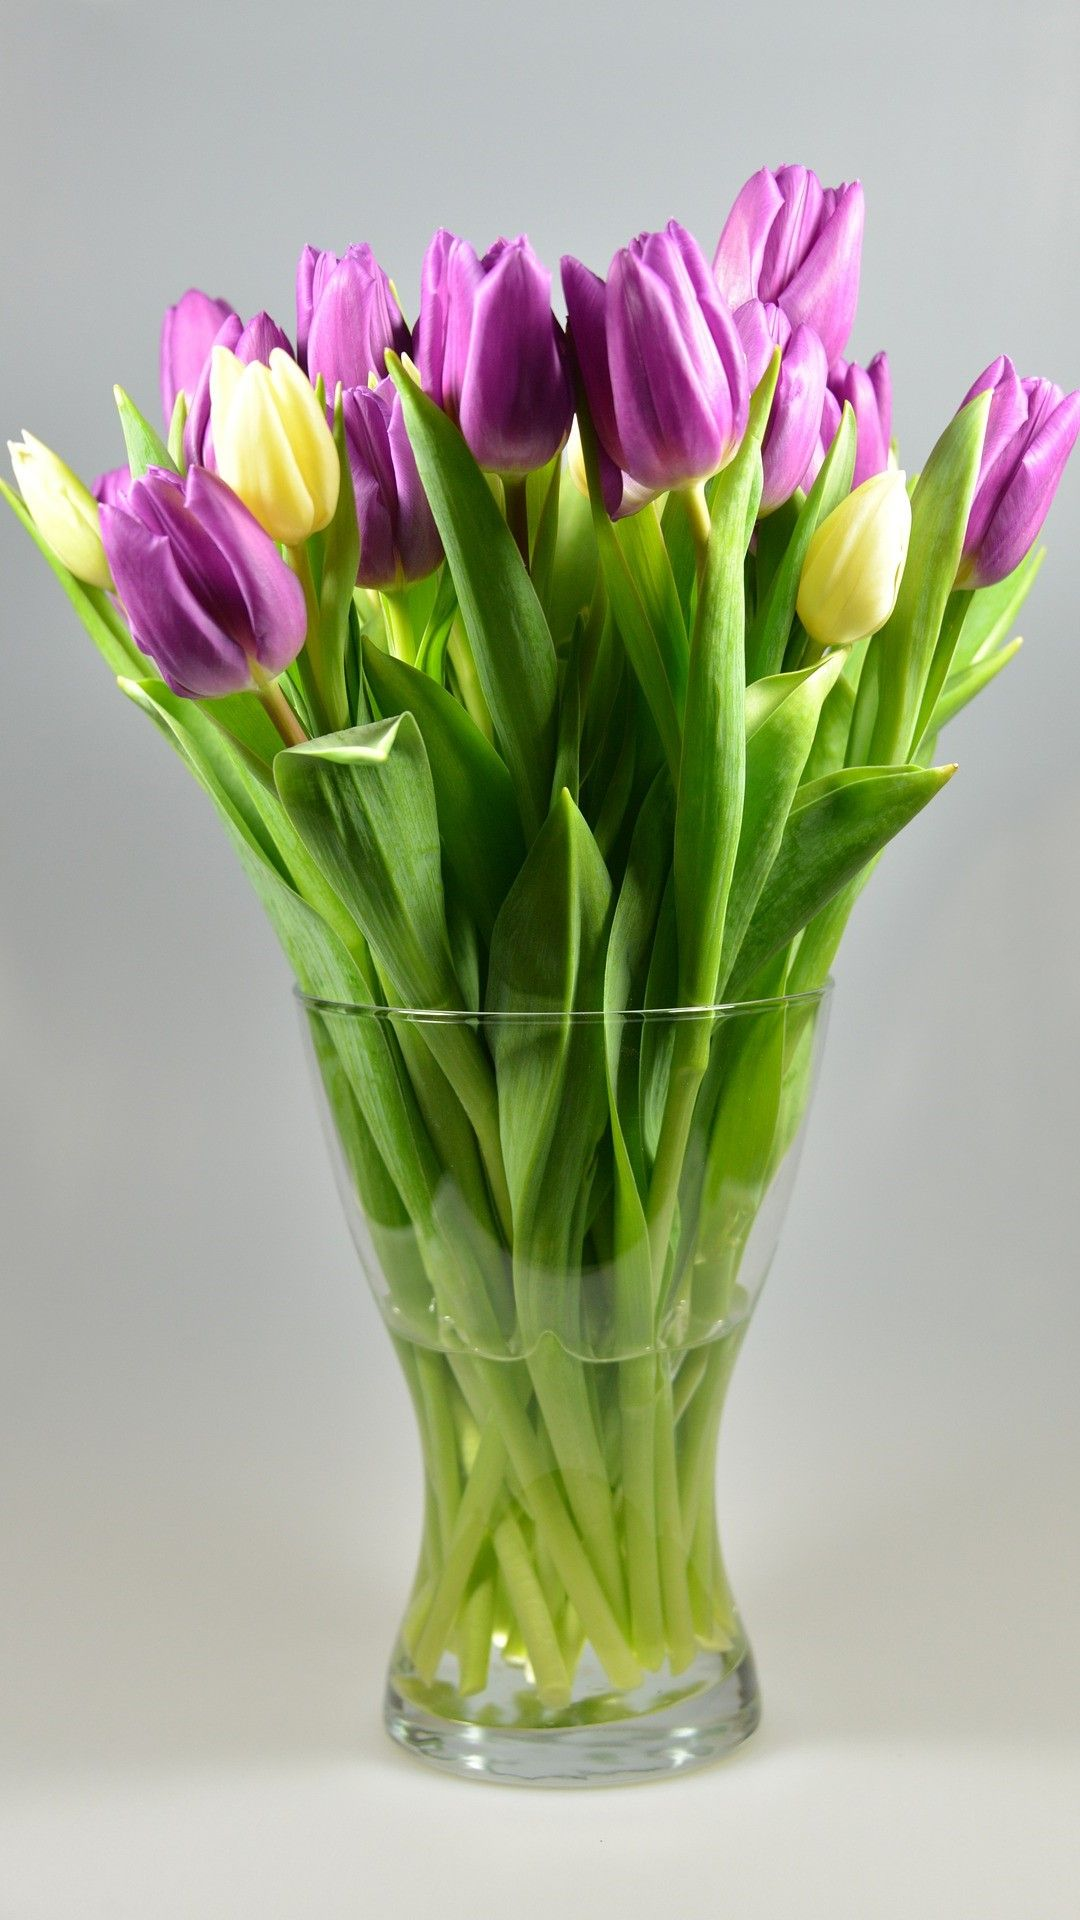 15 Flower Delivery Near Me Options Flower vases